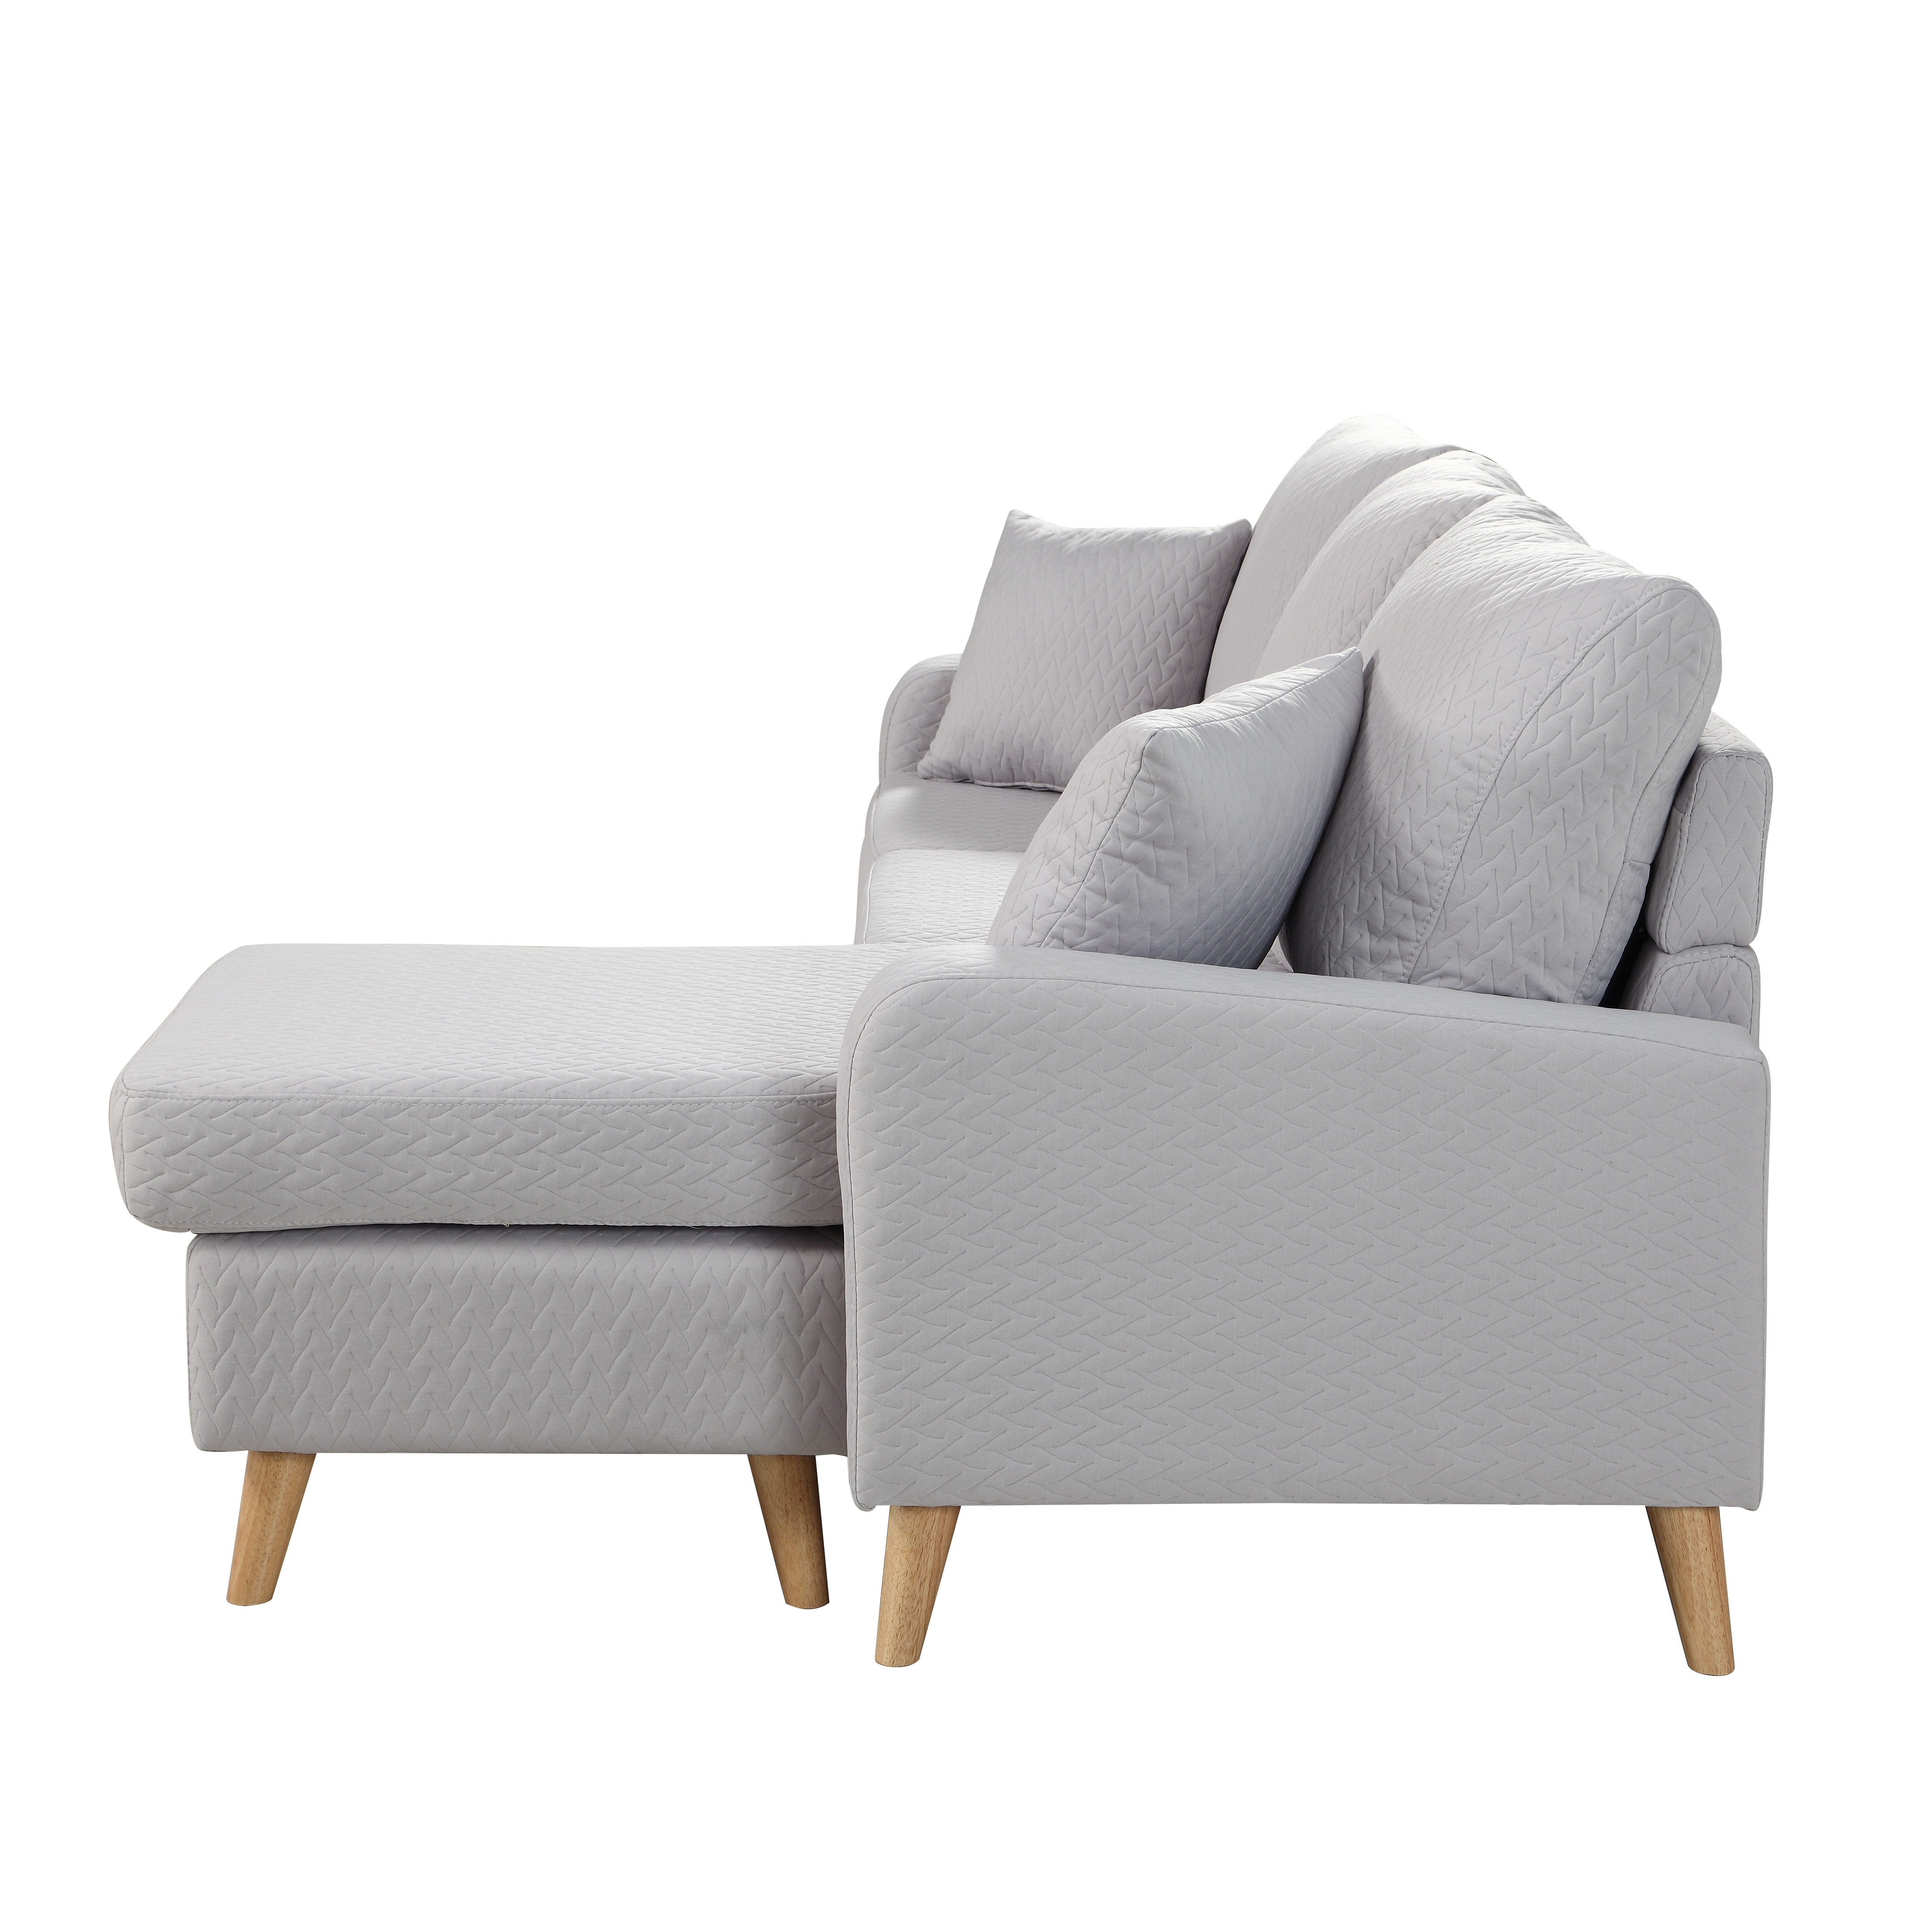 Best ideas about Mini Sectional Sofa . Save or Pin Modern Fabric Small Space Sectional Sofa with Reversible Now.